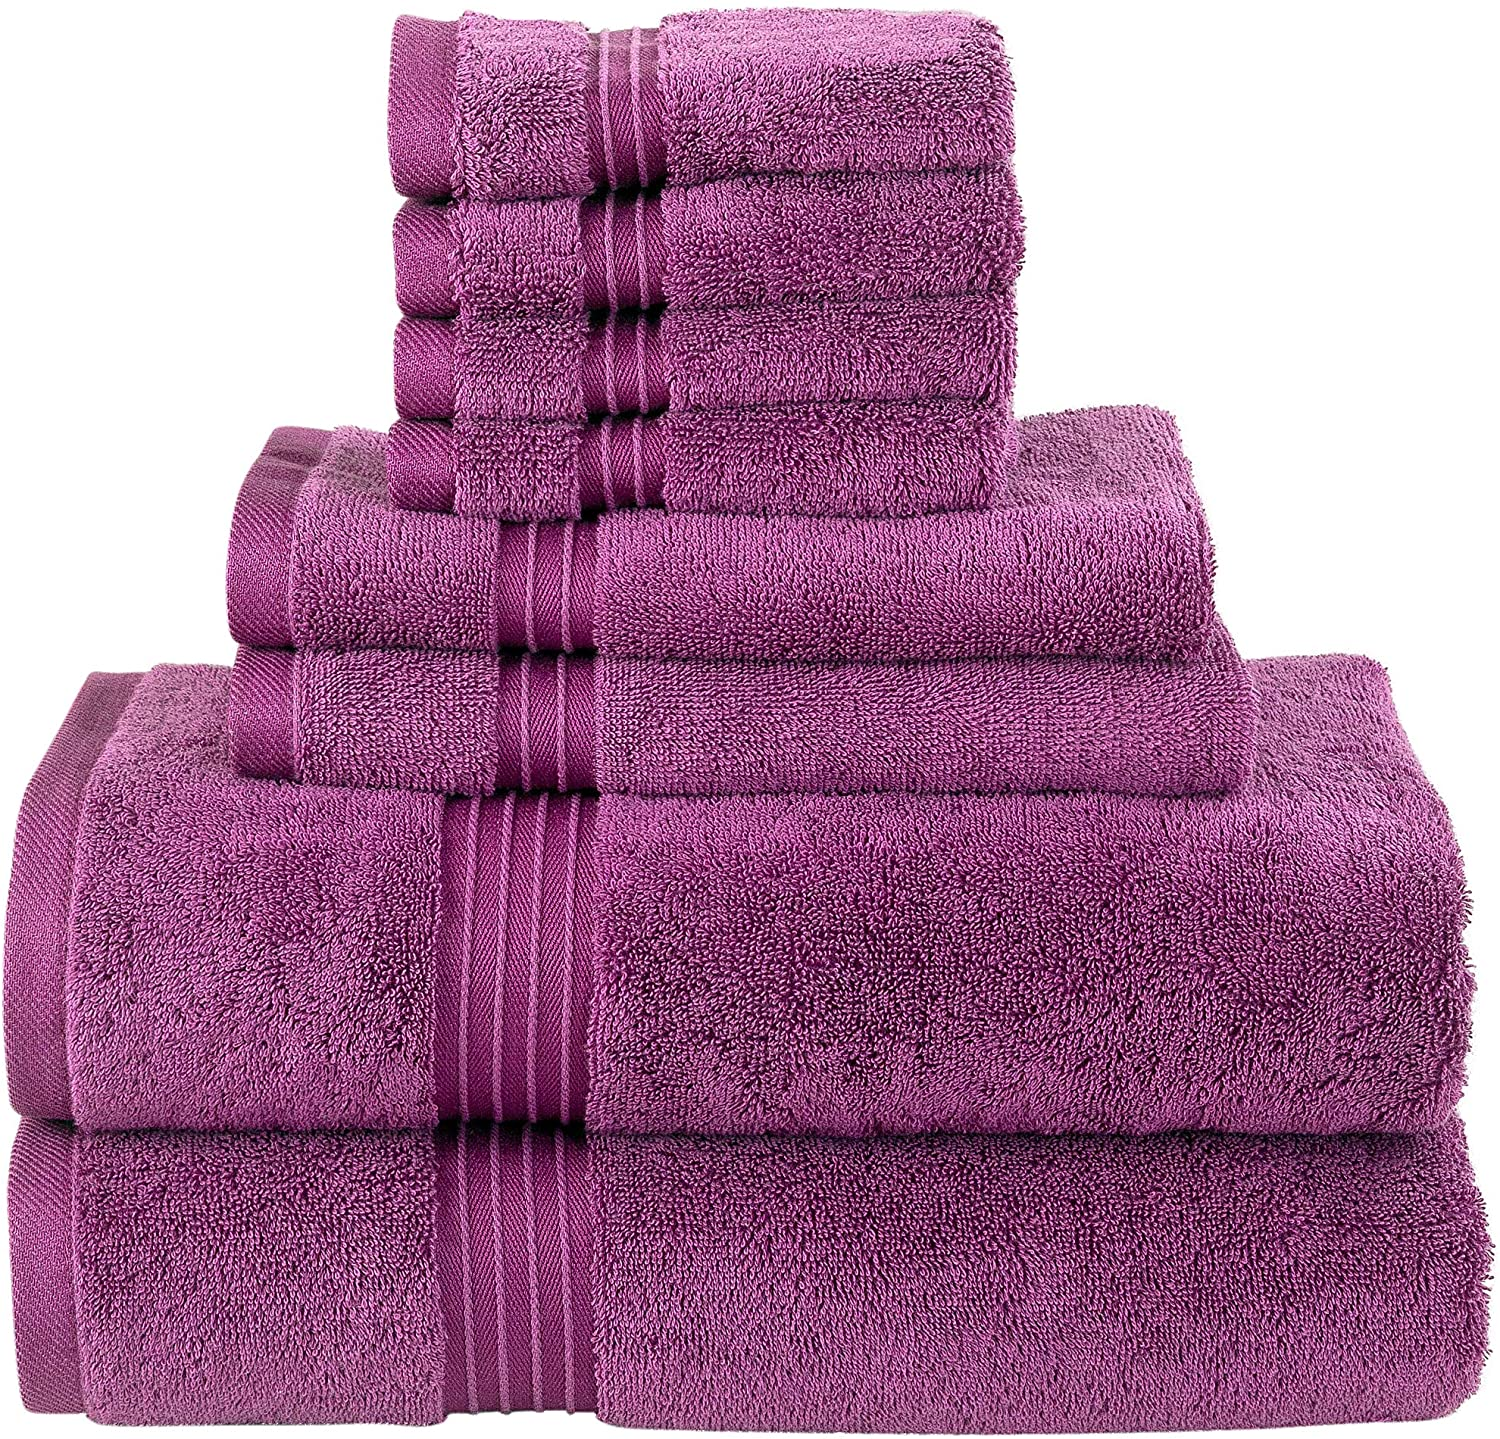 Gifts Cheap bargain Bliss Casa 8 Piece Towel Set; Hand 2 Bath Towels and 4